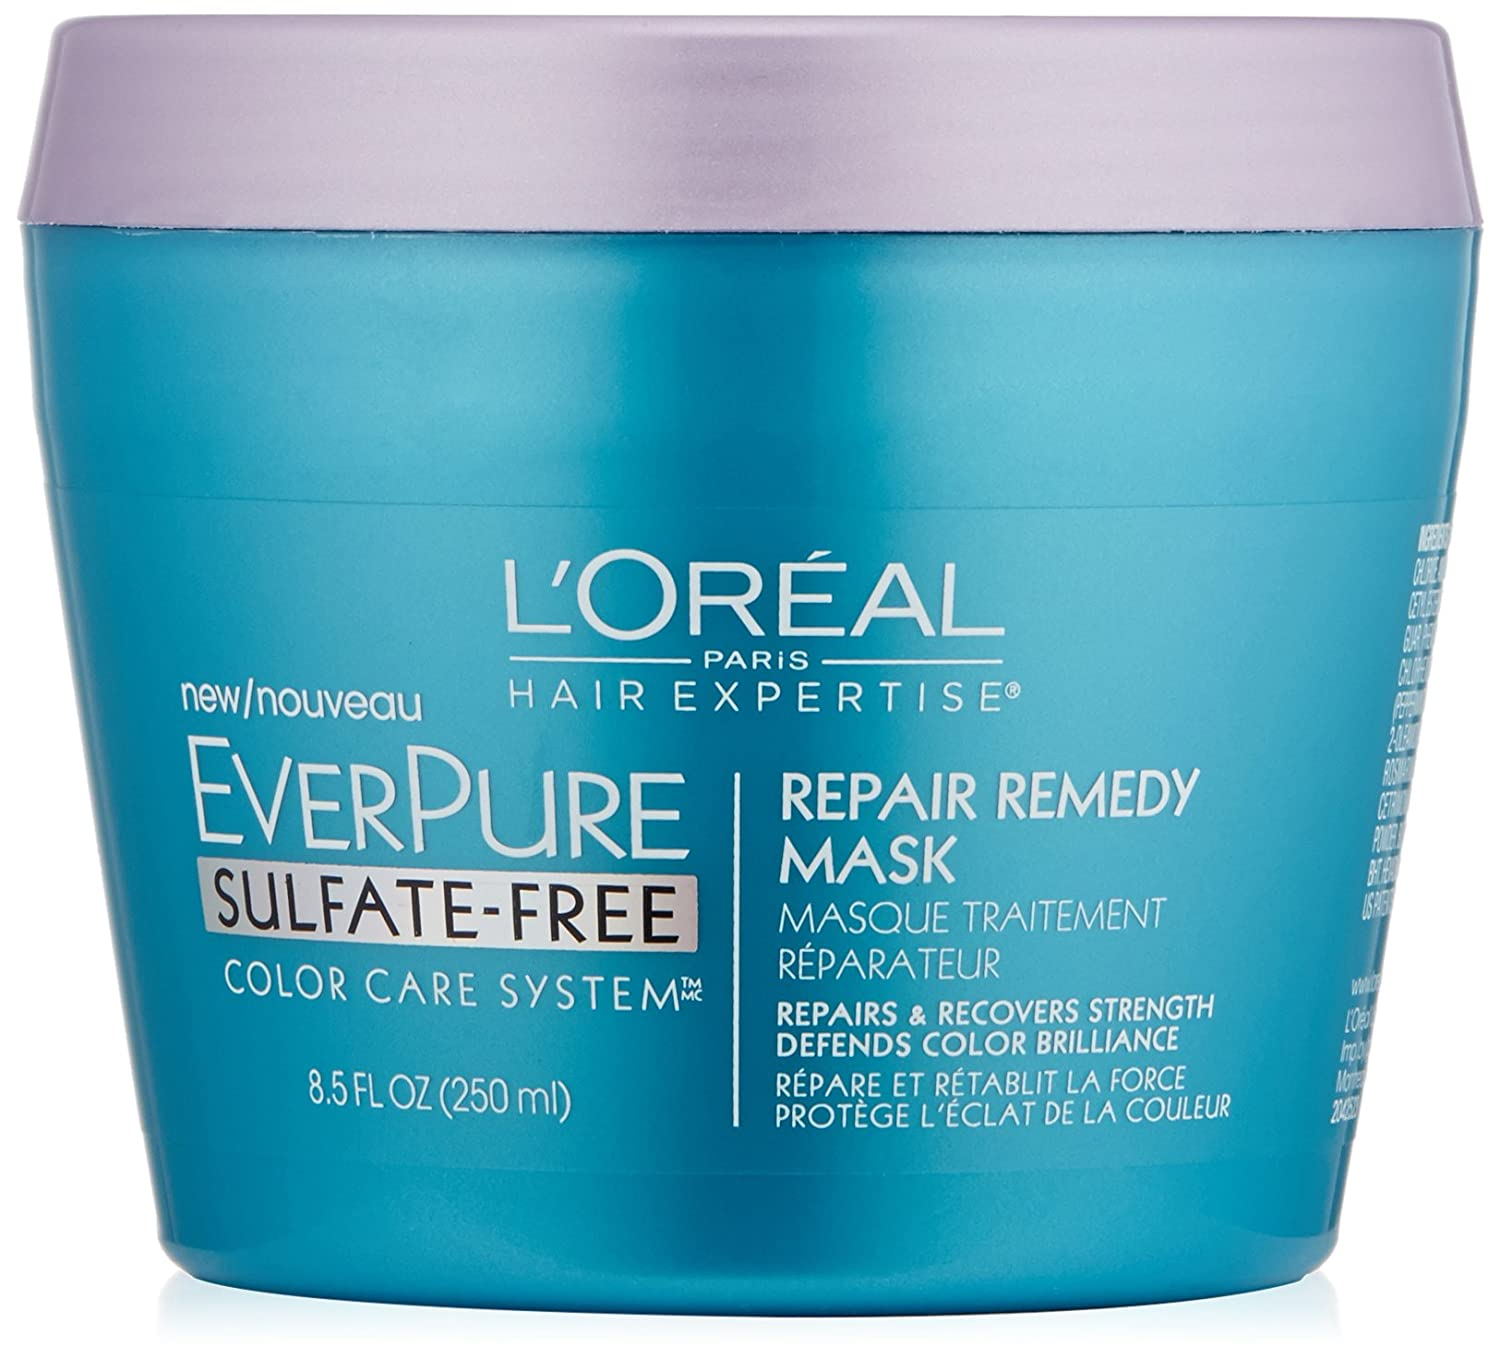 L'Oreal Paris Hair Care Expertise Everpure Repair and Defend Rinse Out Mask, 8.5 Fluid Ounce L'Oreal - Hair Care K2051500